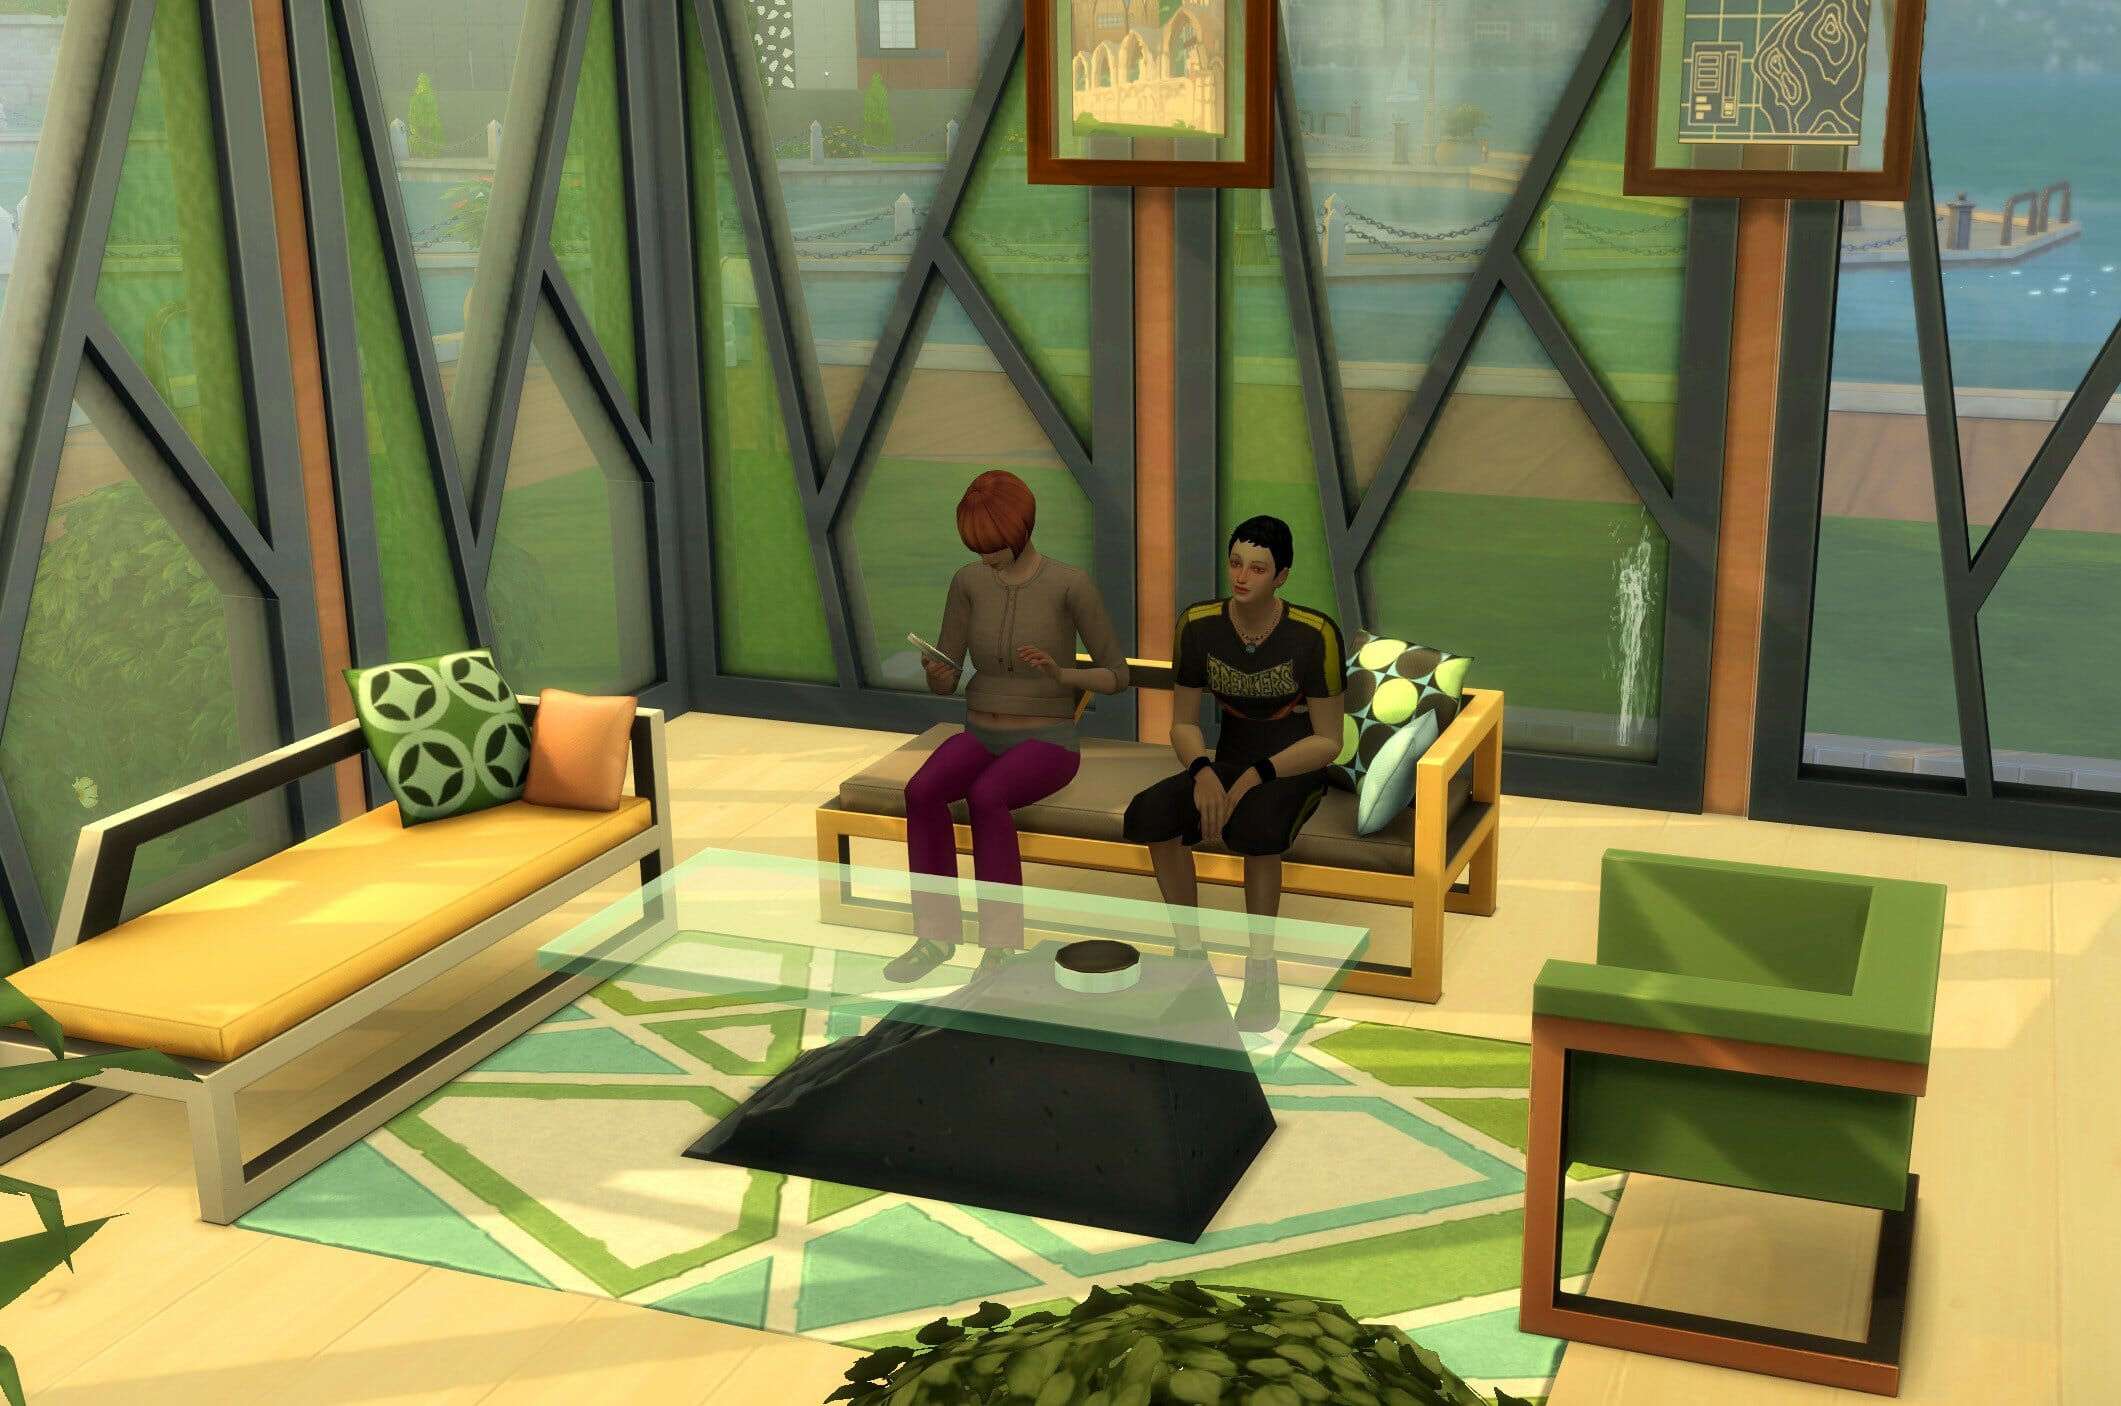 Objets sims 4 fitness